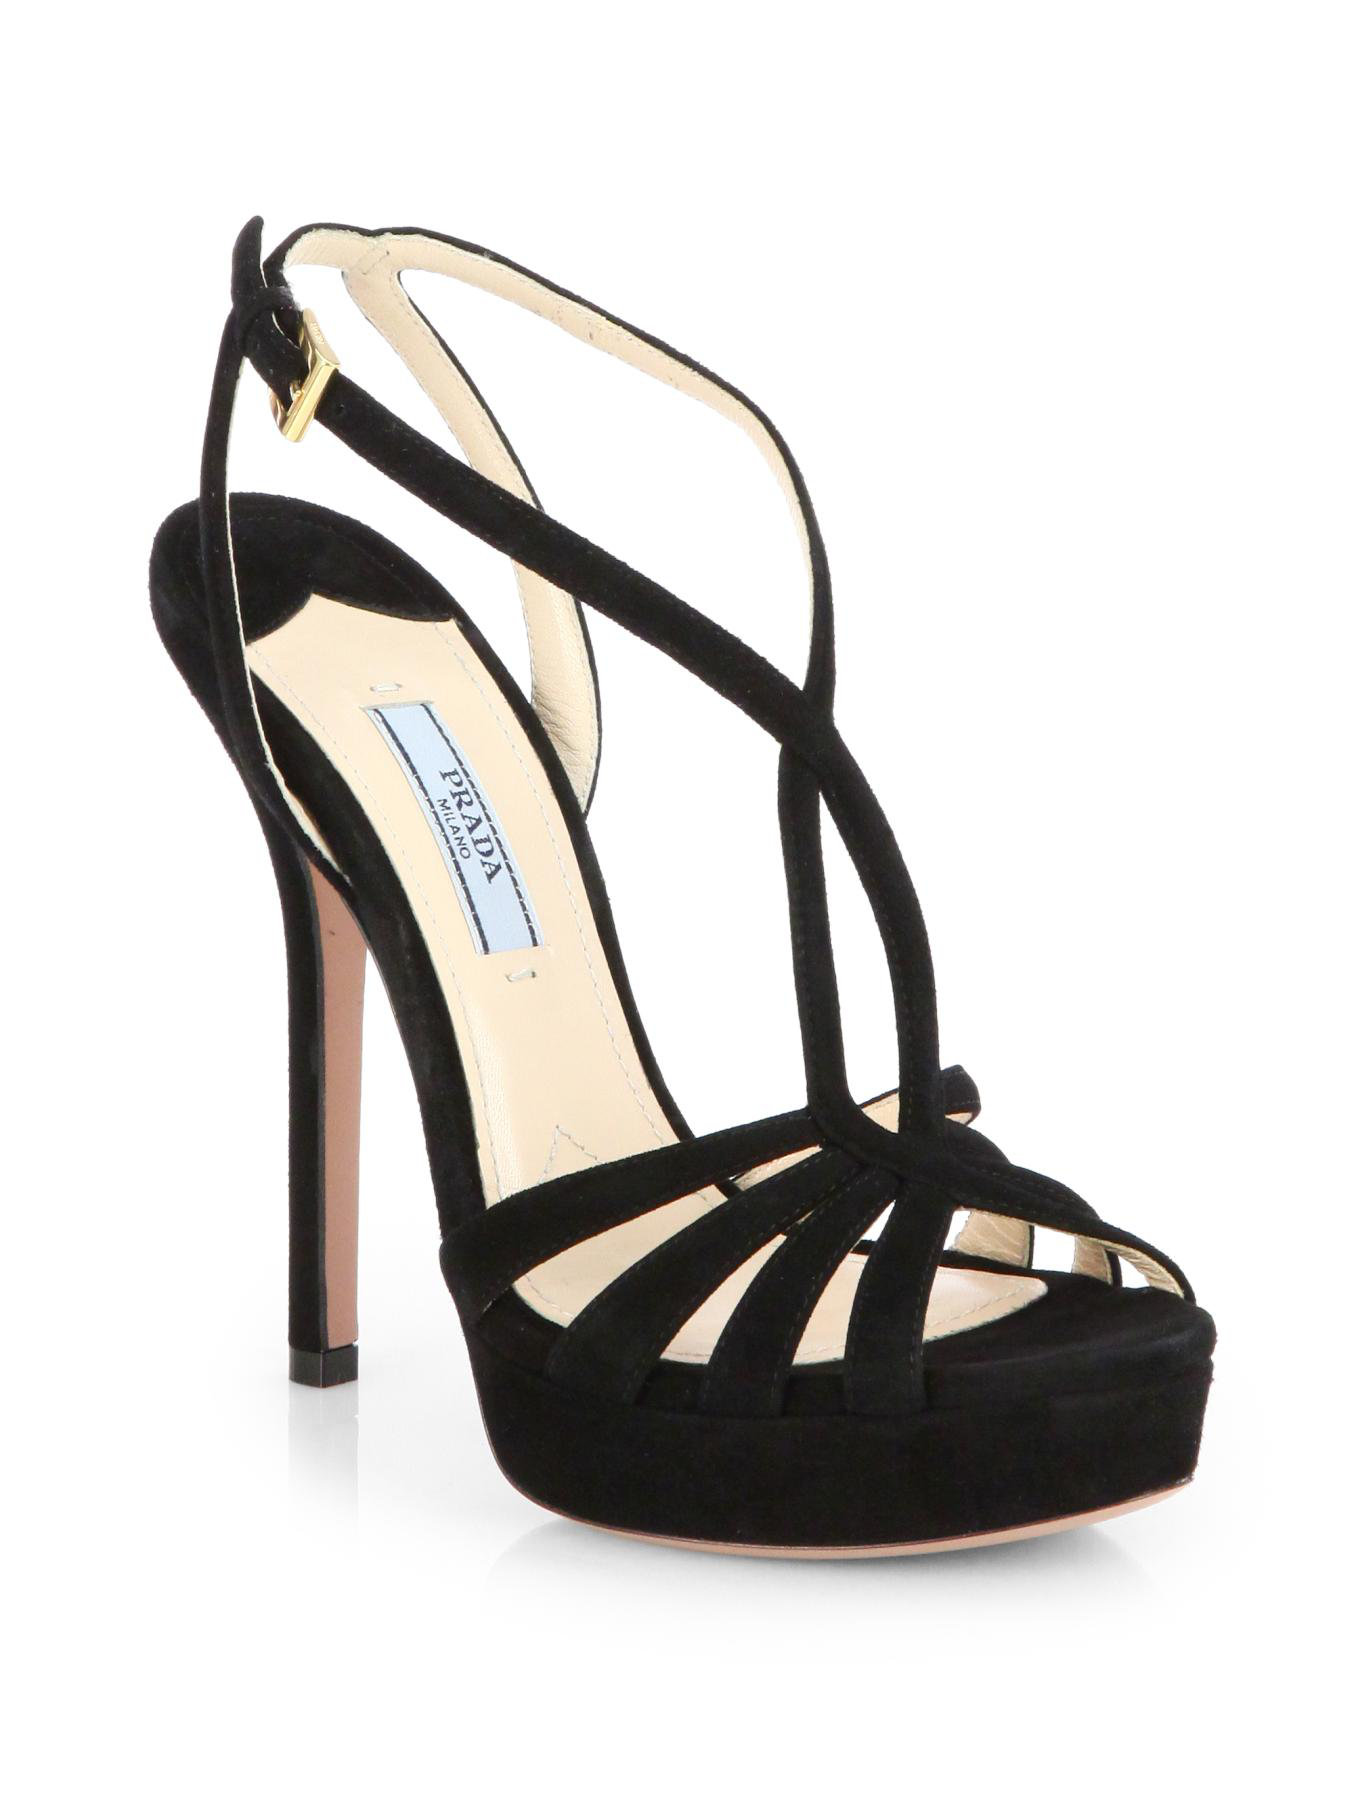 Prada Strappy Suede Platform Sandals in Black | Lyst